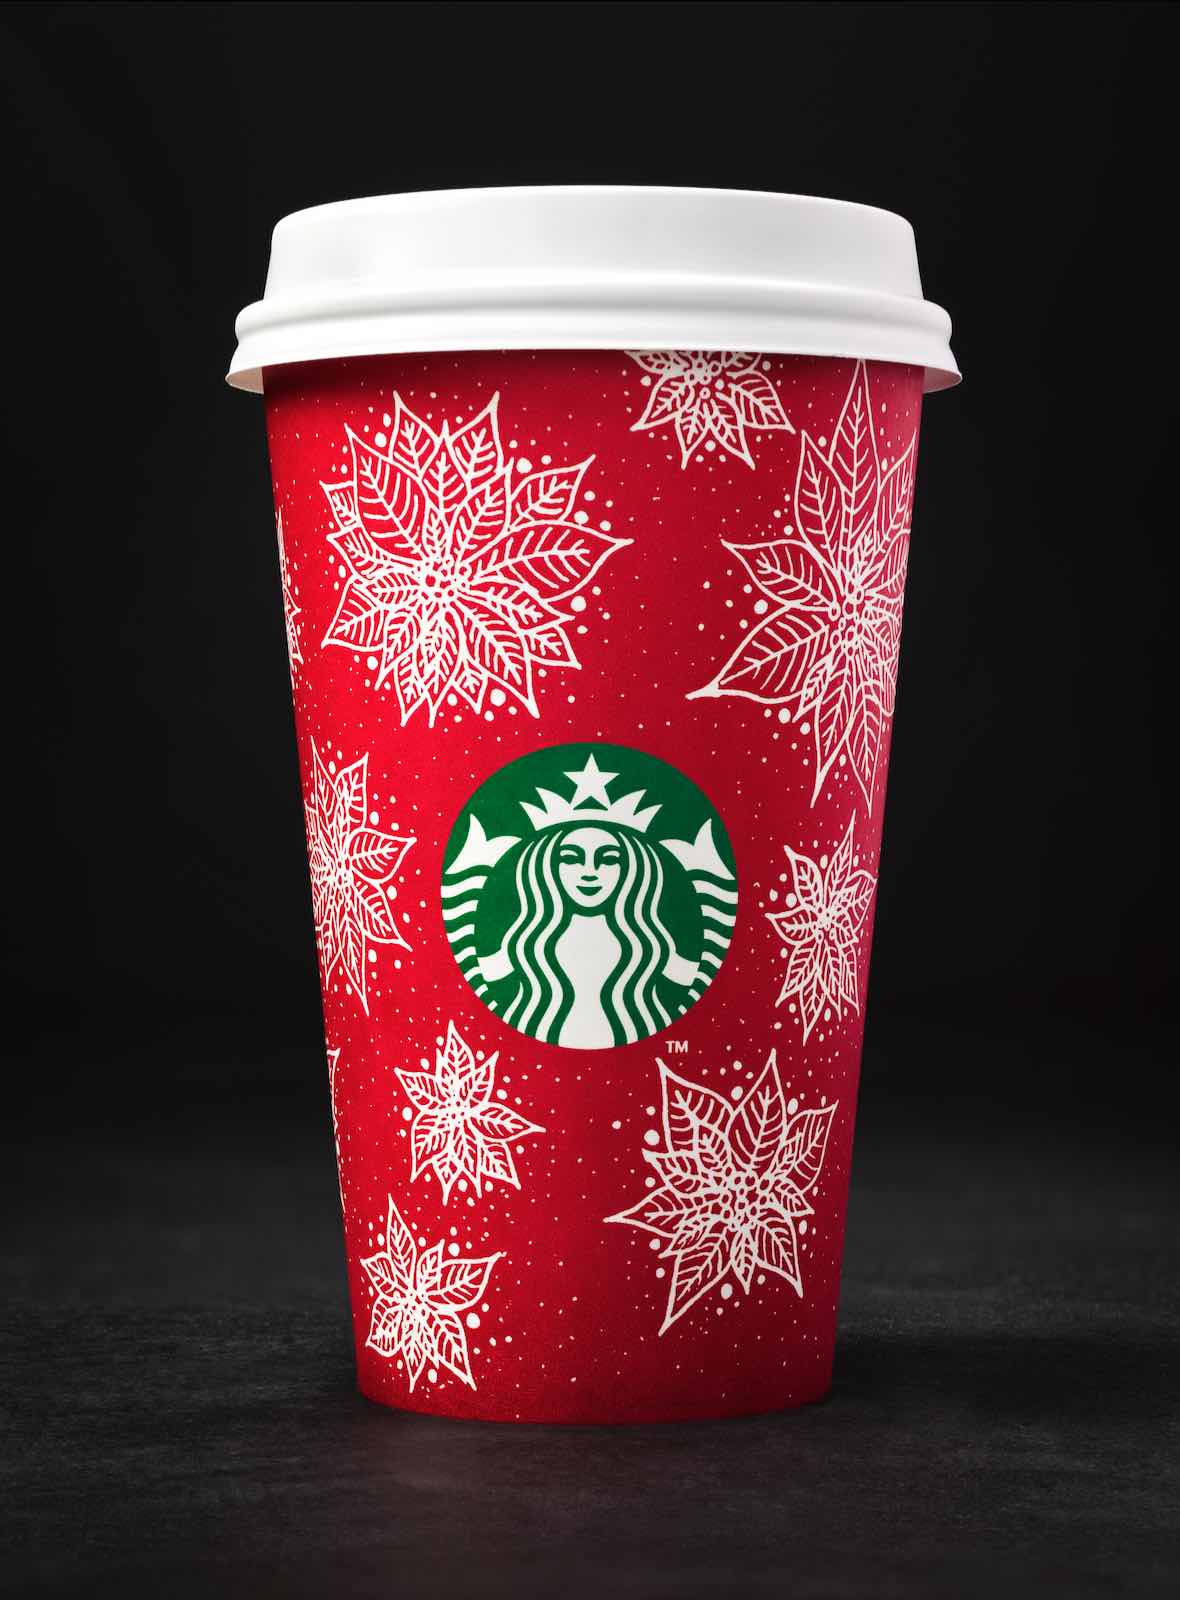 starbucks-poinsettia-by-christina-bakersfield-california-united-states-aspirantsg